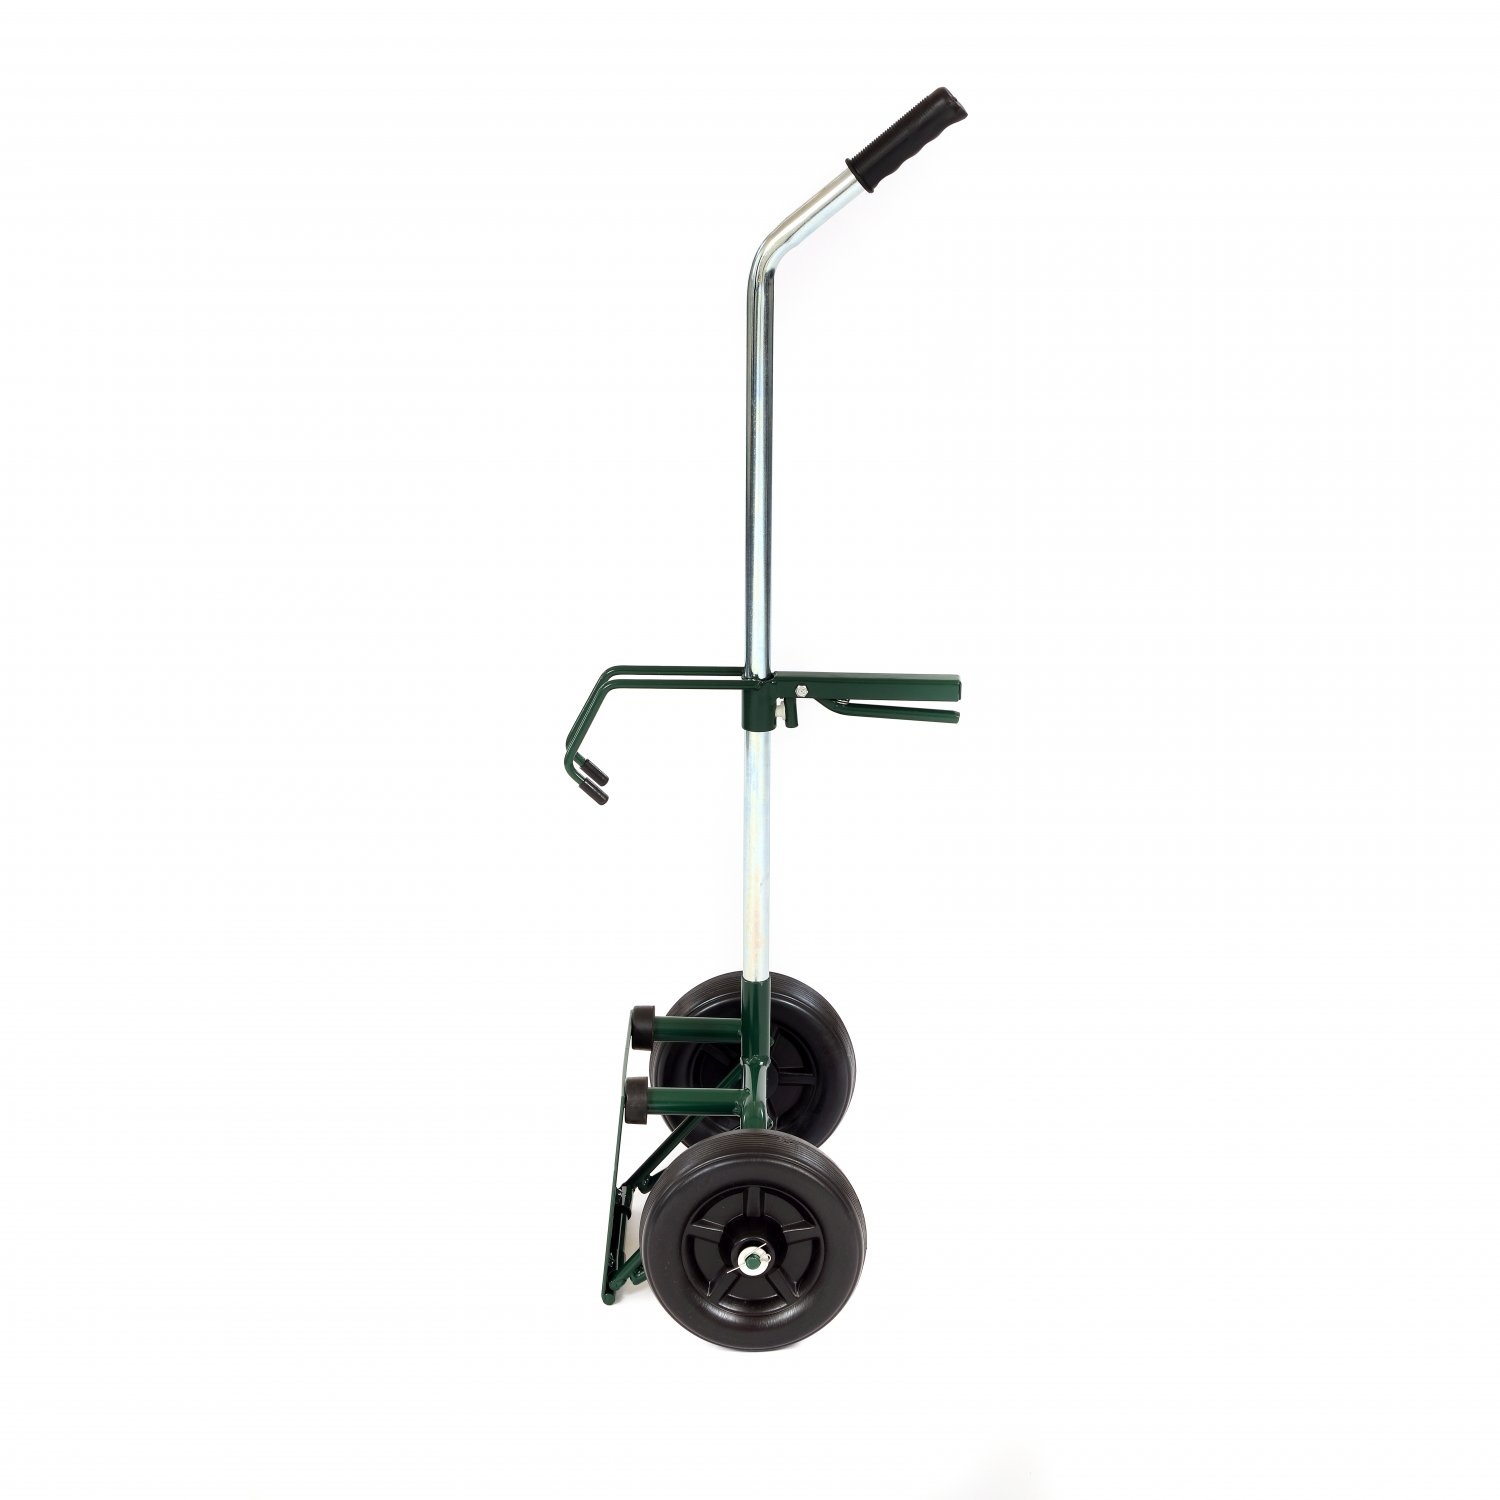 Wheeled Plant Flower Pot Mover Transport Trolley Hand Truck